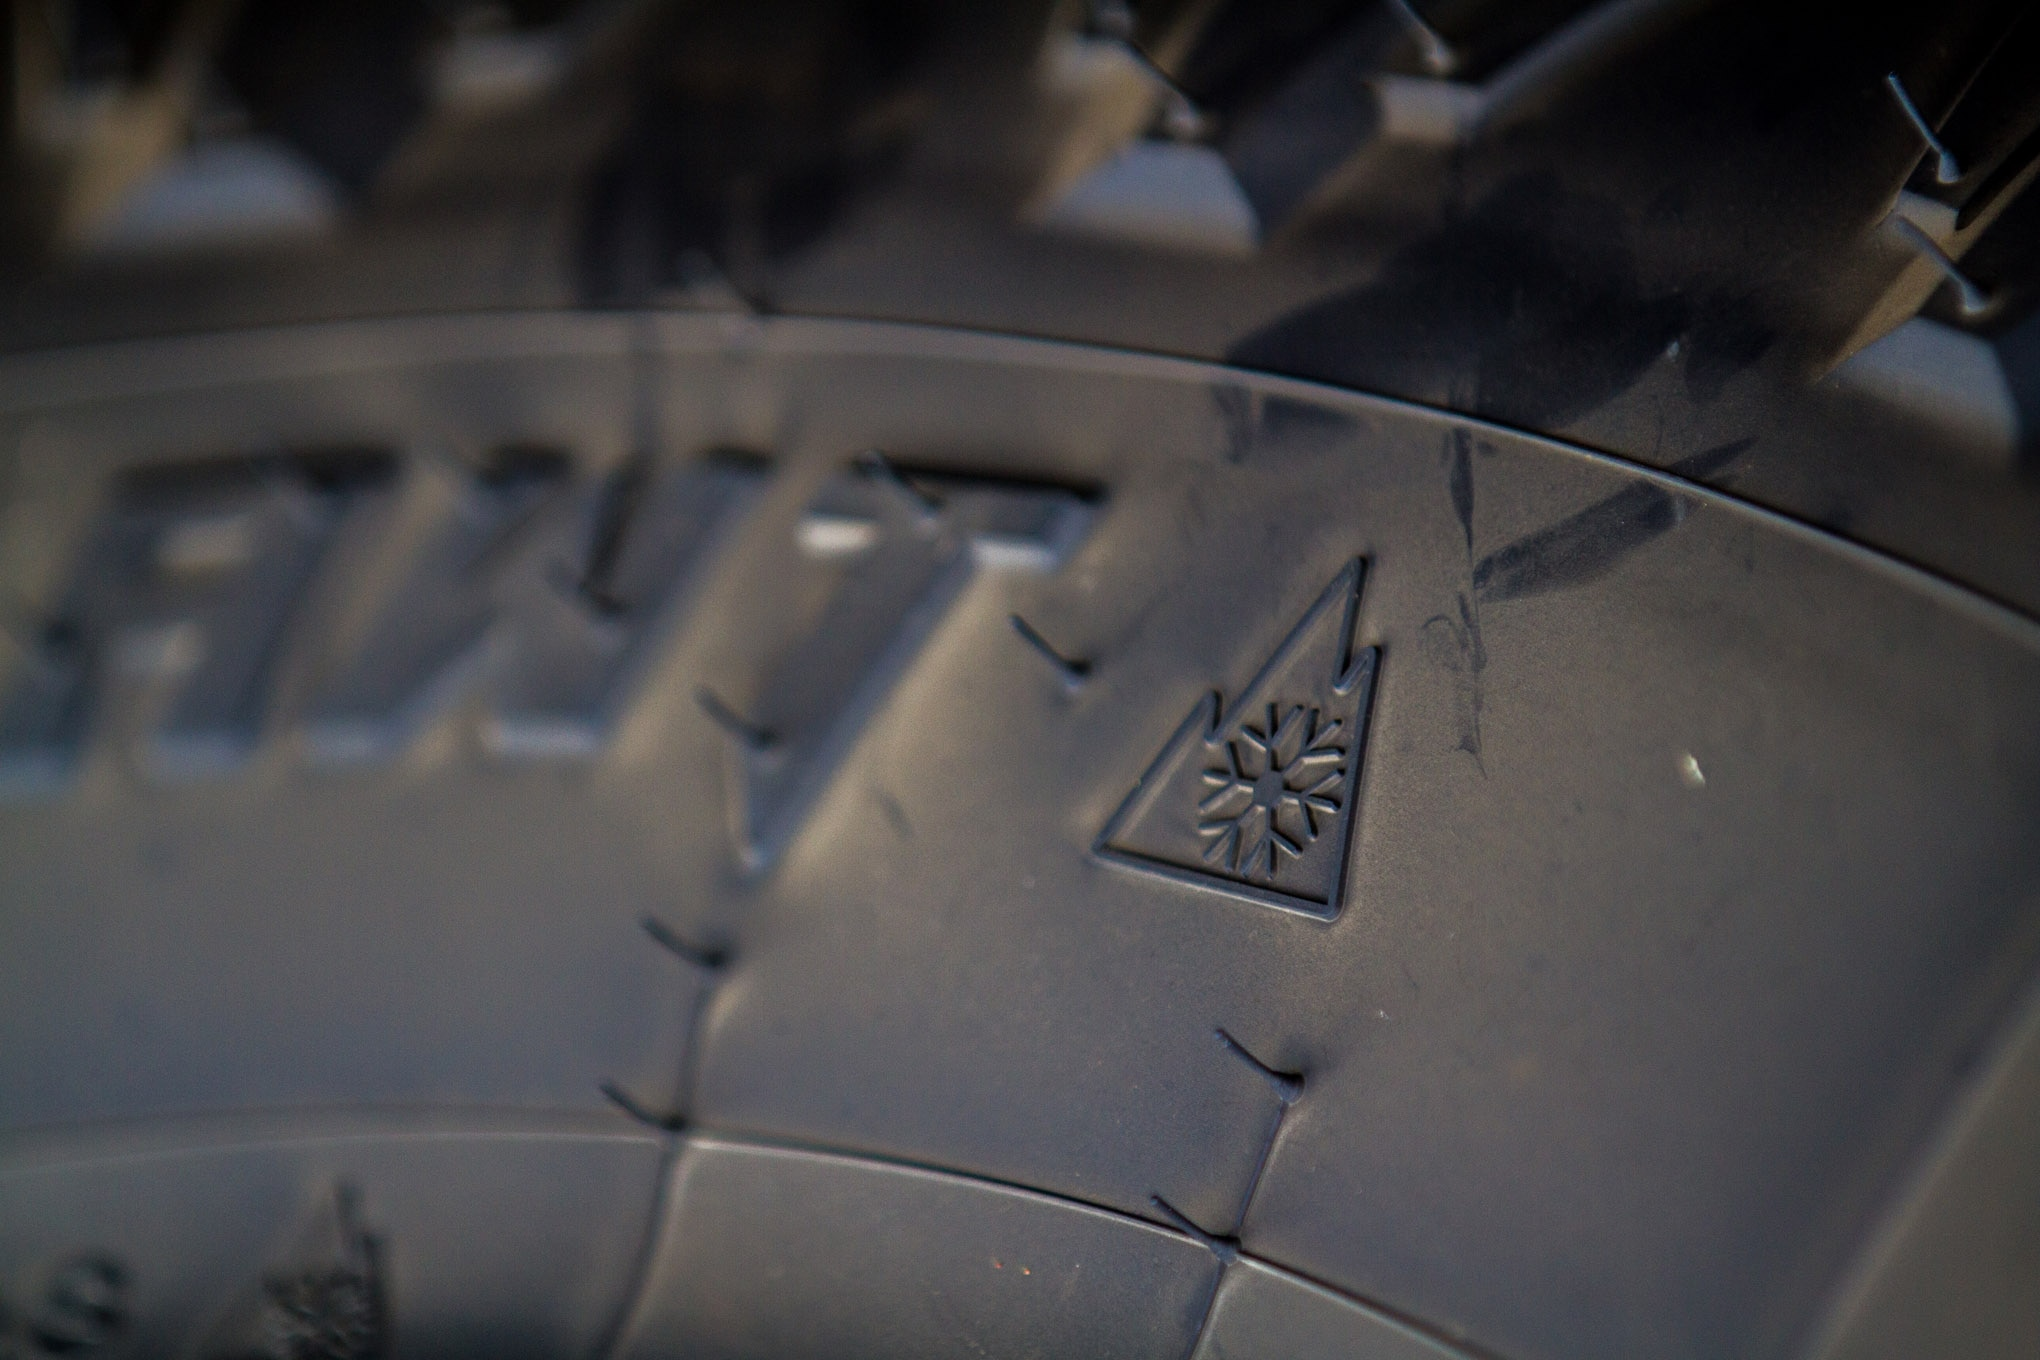 """""""M+S"""" denotes a mud and snow tire, which may get you past the Department of Transportation road workers on a snowy road, but the rating really doesn't mean a whole lot. The Three Peak Mountain Snowflake has more stringent requirements. In order to meet this standard, the tire must attain a traction index equal to, or greater than, 110 (compared to a reference tire, which is rated 100) during traction tests specified by the ASTM on packed snow."""